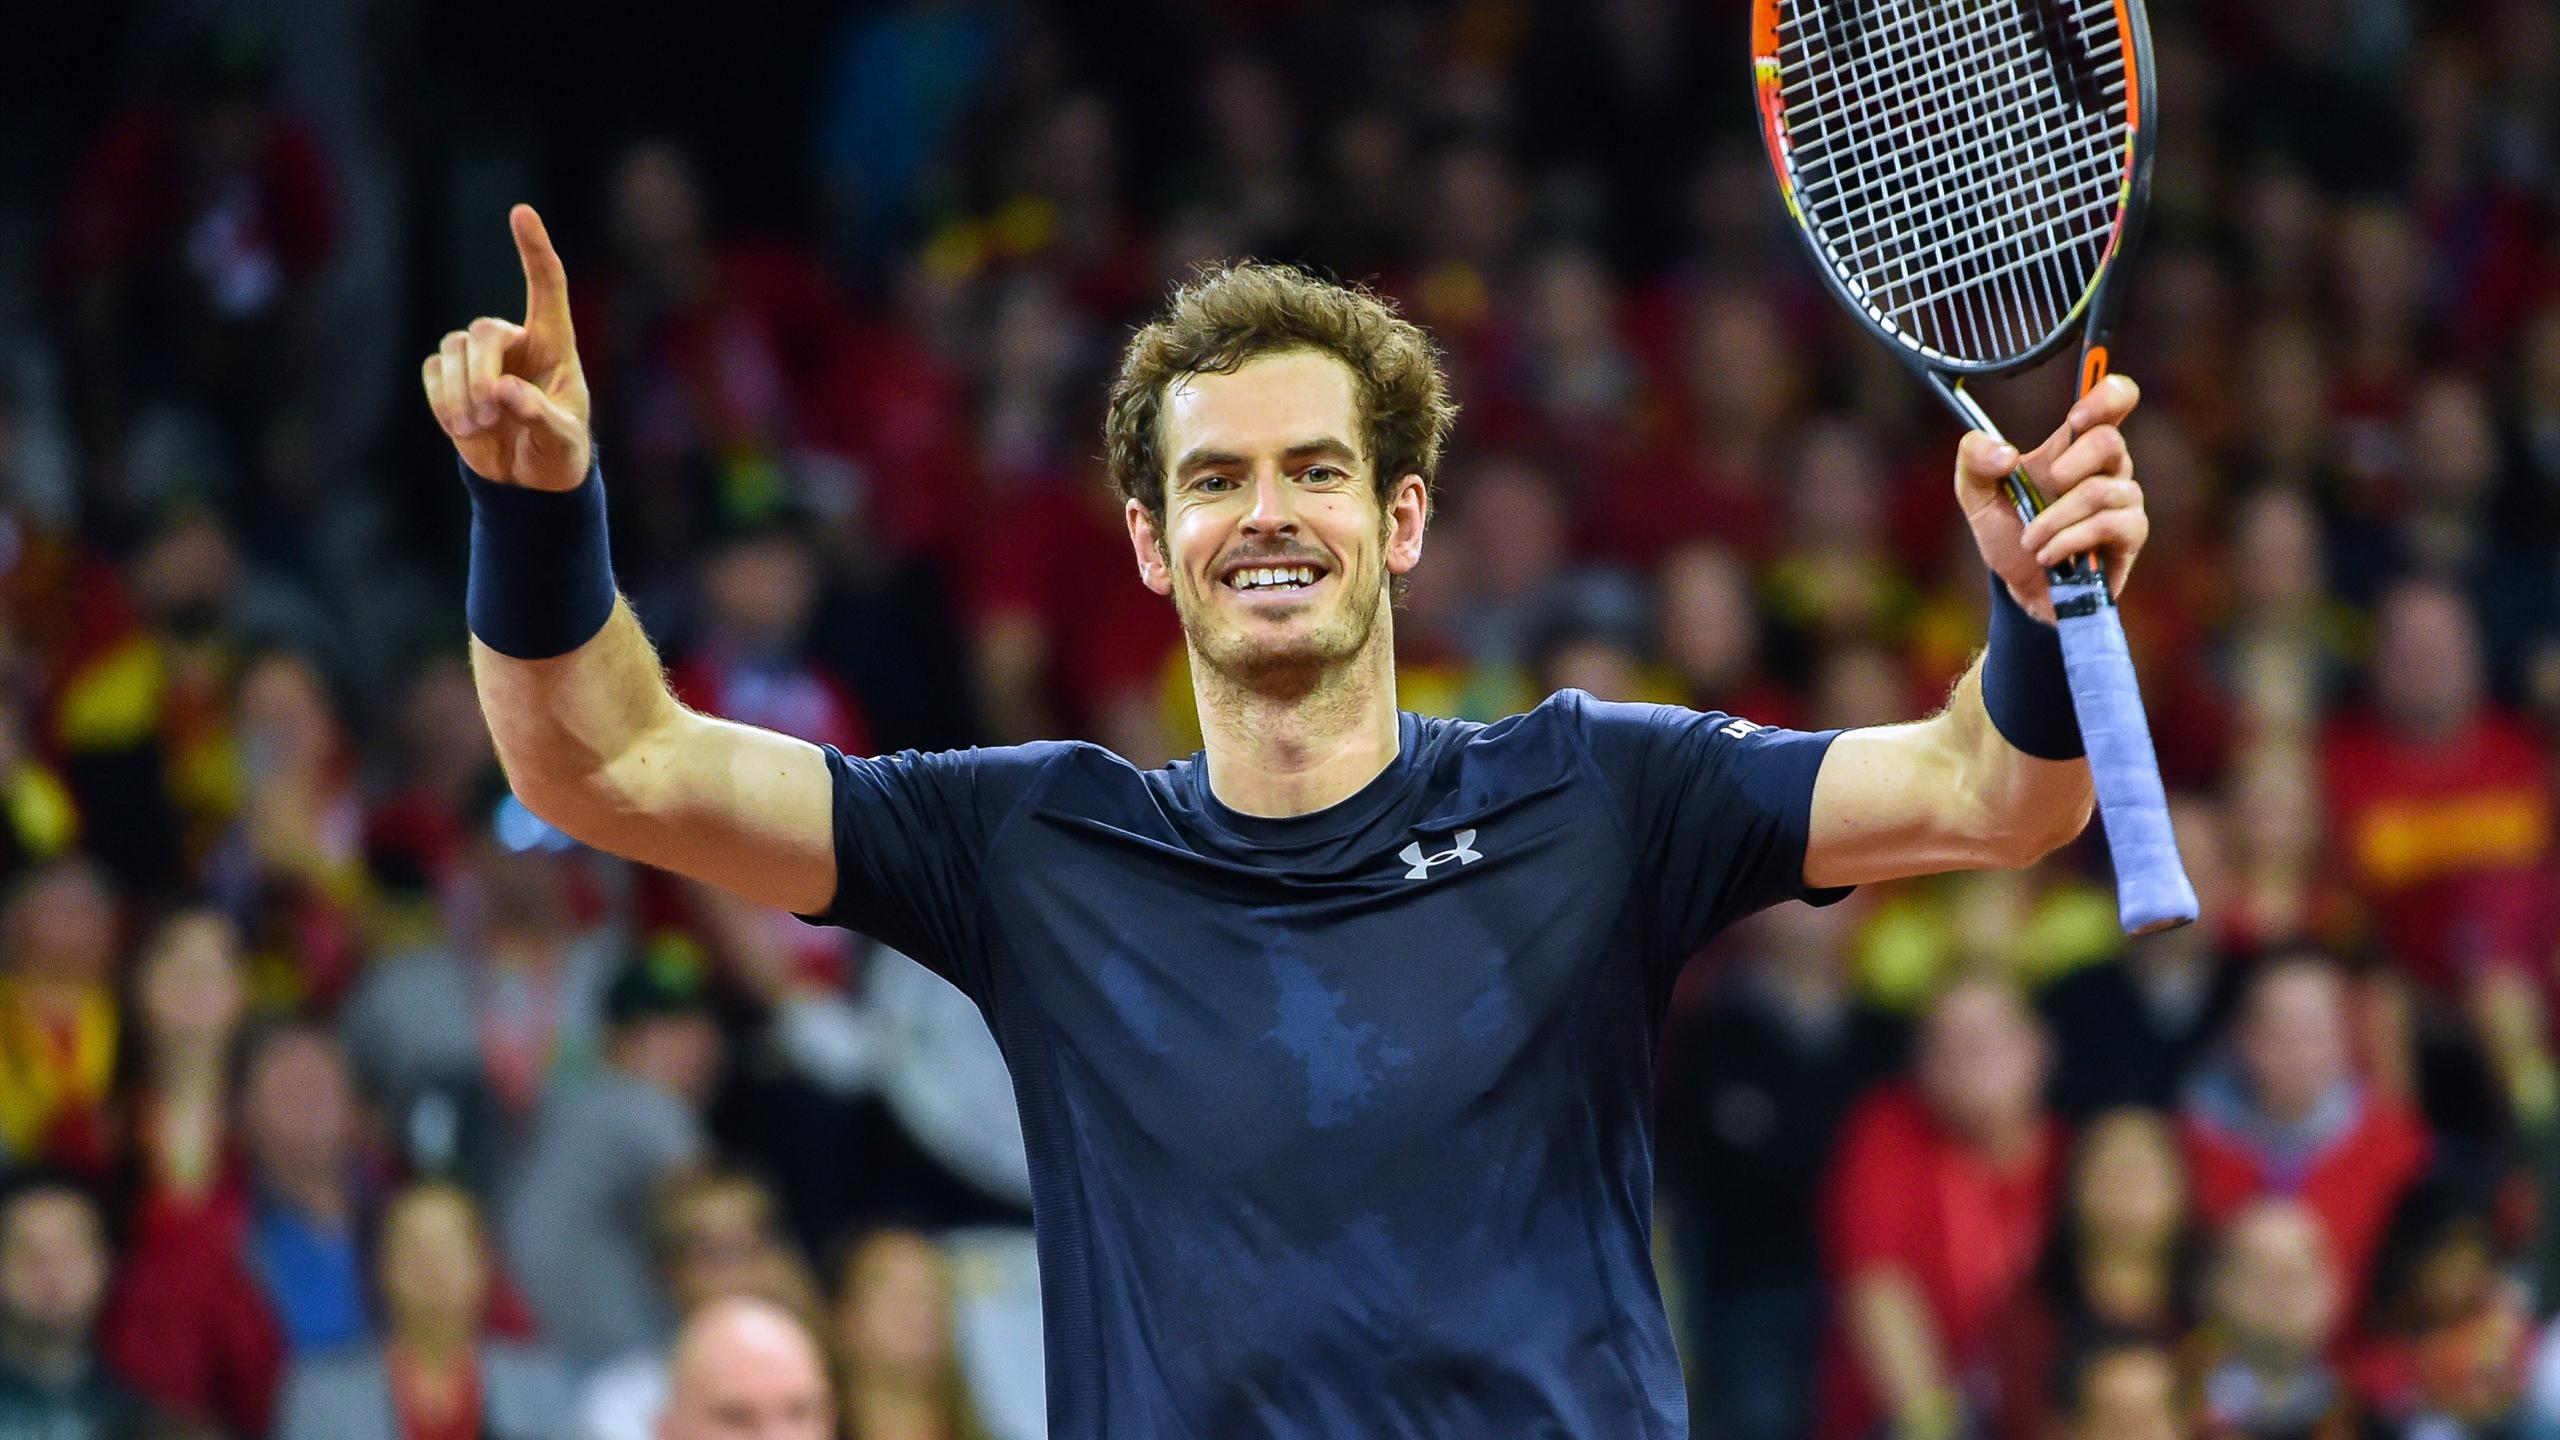 Britain's Andy Murray celebrates after the team won the doubles on the second day of the Davis Cup final against Belgium